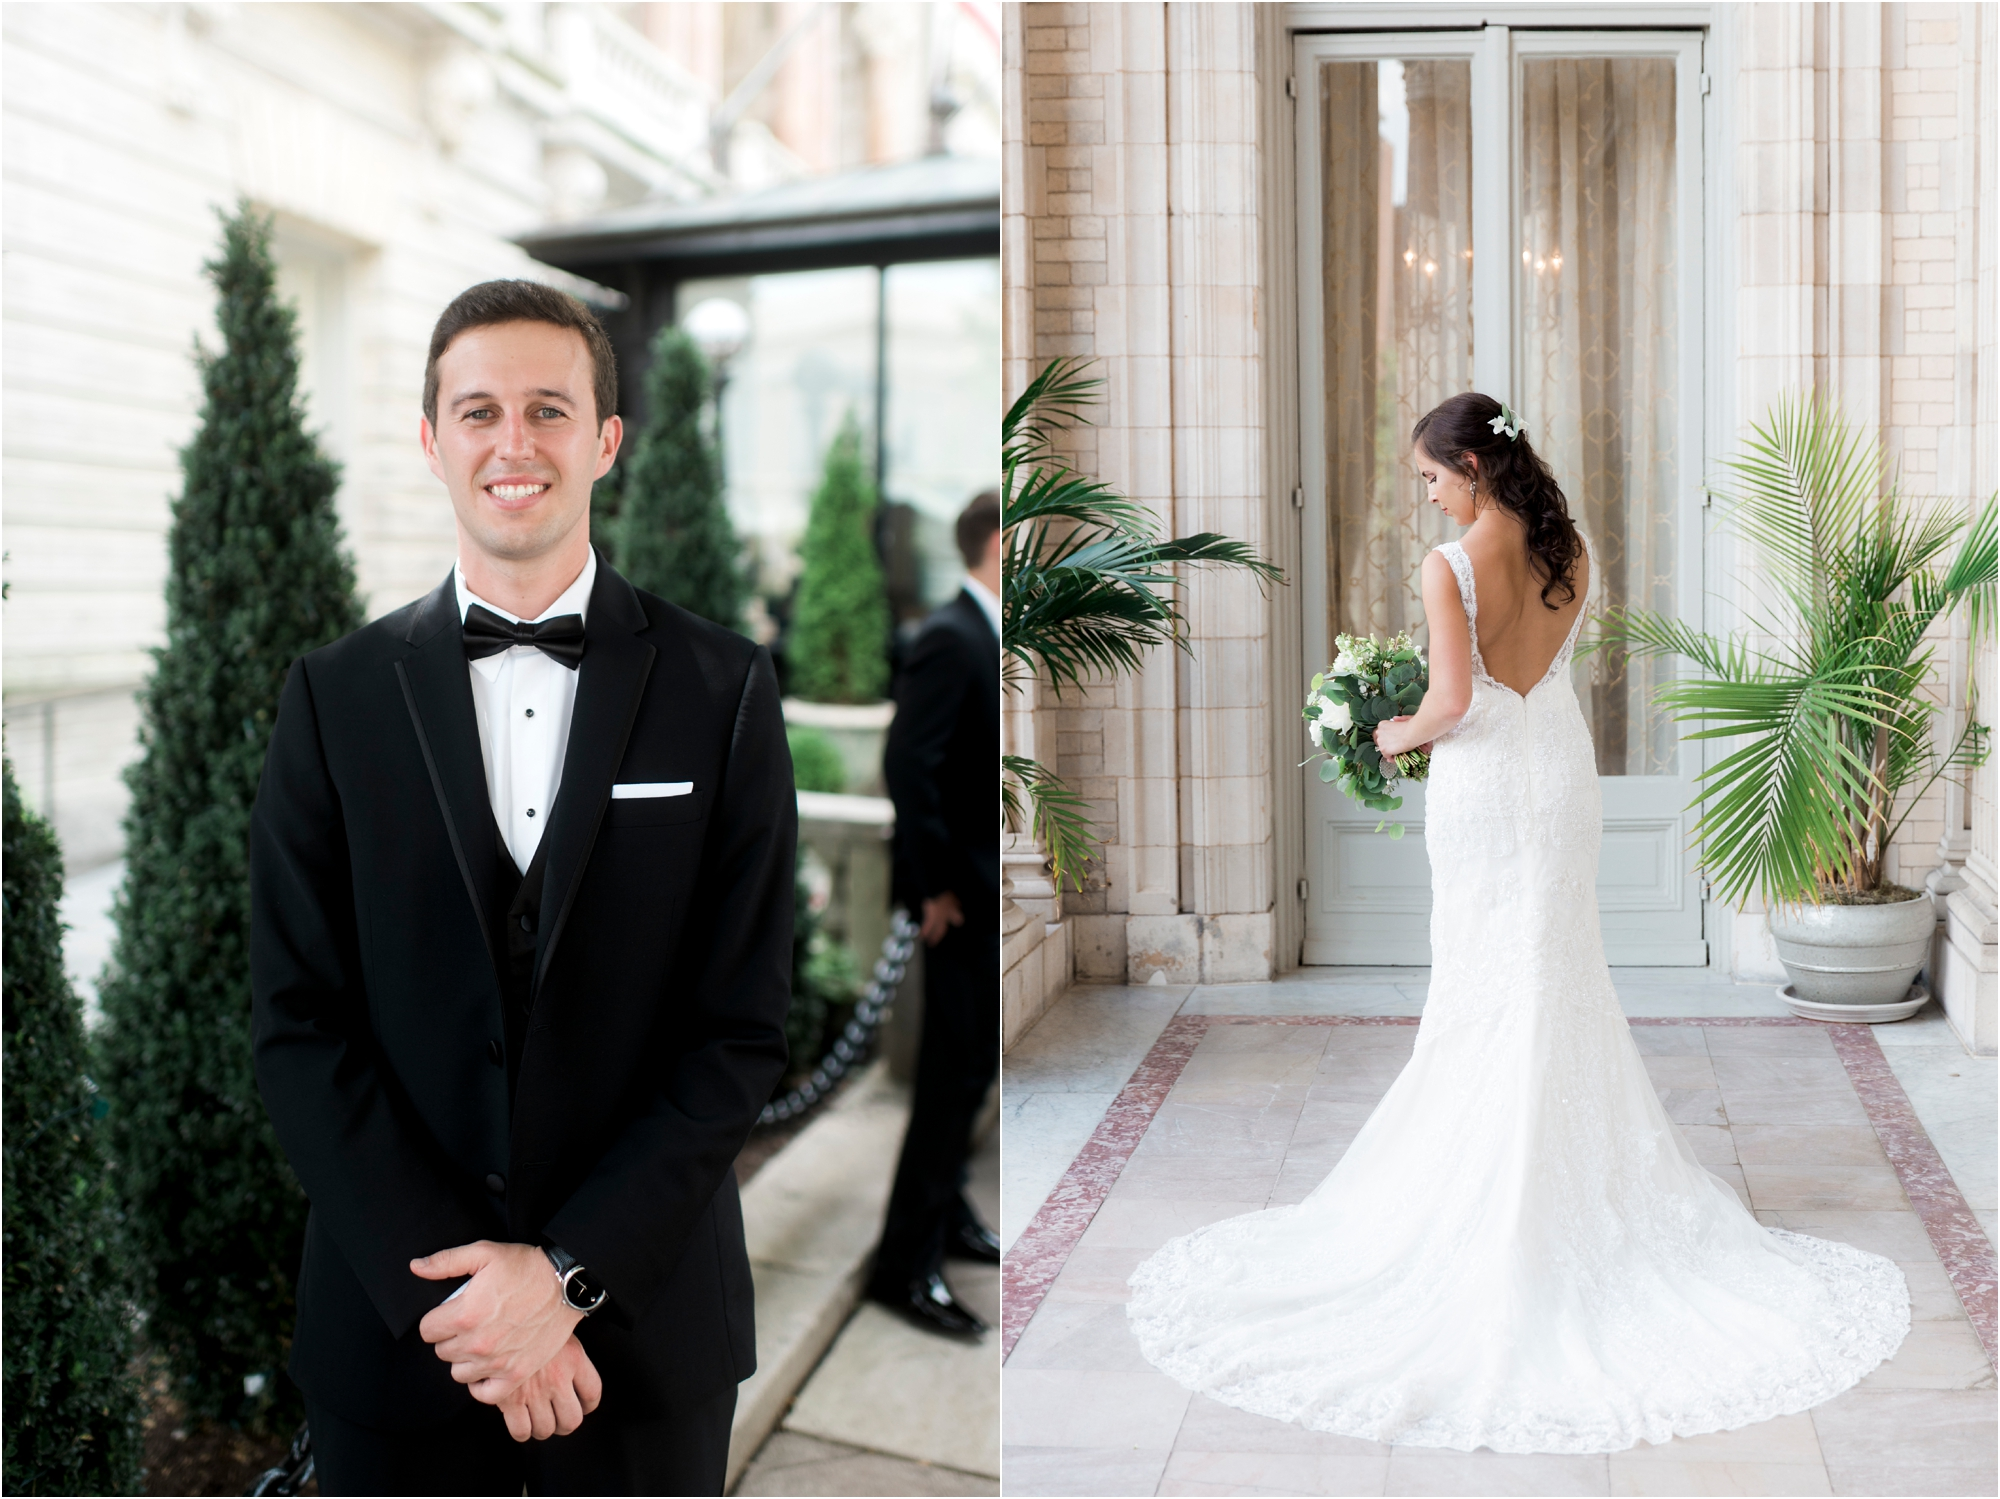 elaina-kevin-greek-wedding-the-jefferson-hotel-richmond-virginia-wedding-photos_0009.jpg